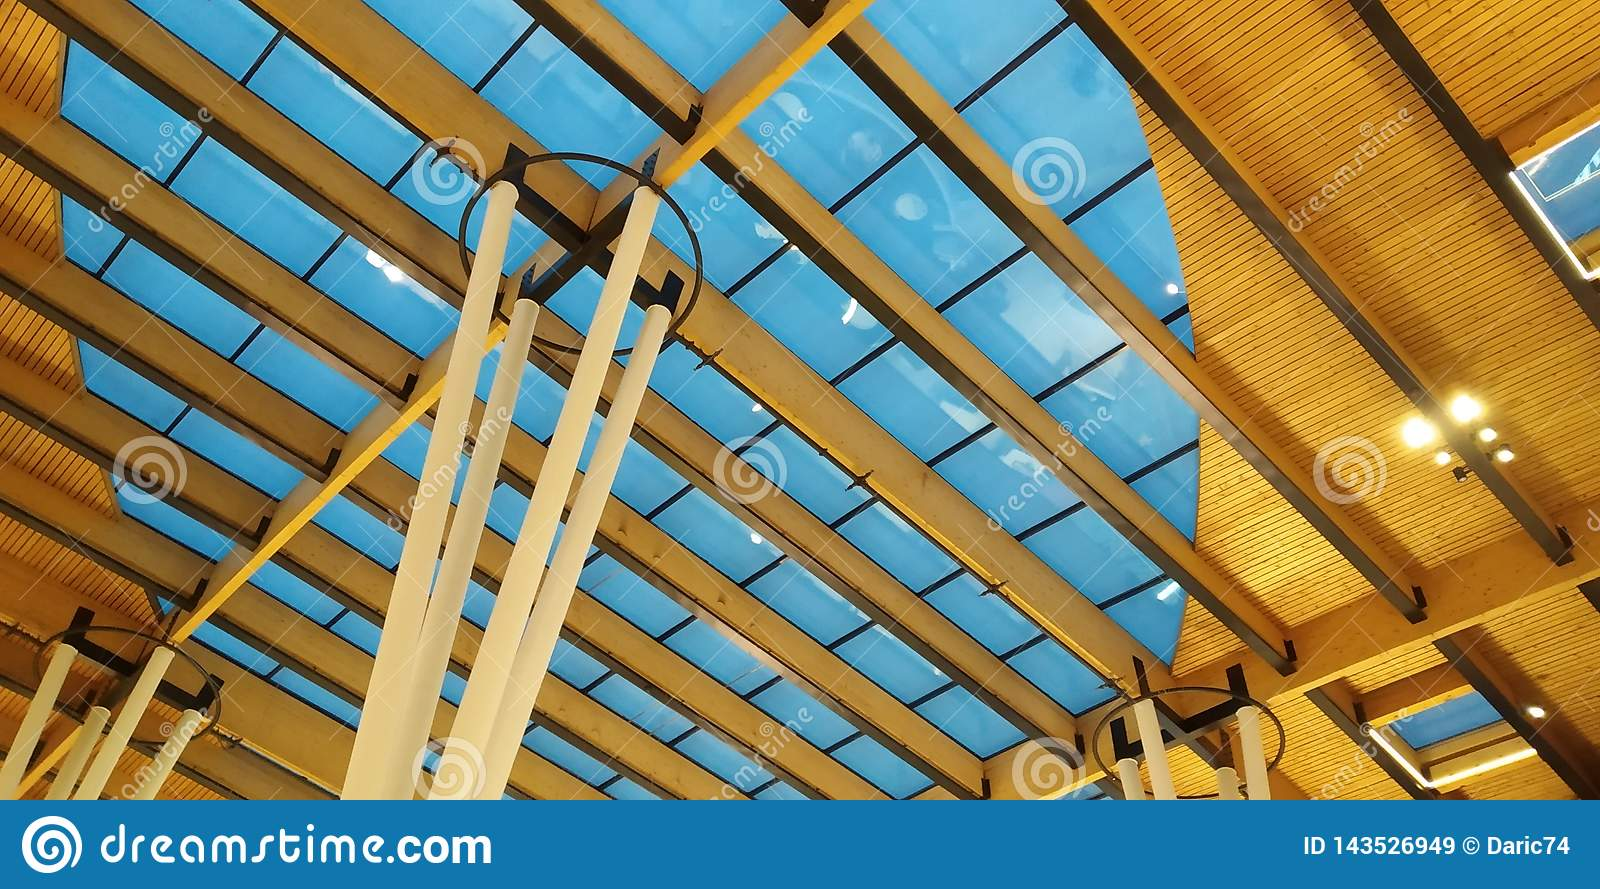 Abstract of modern architecture building interior